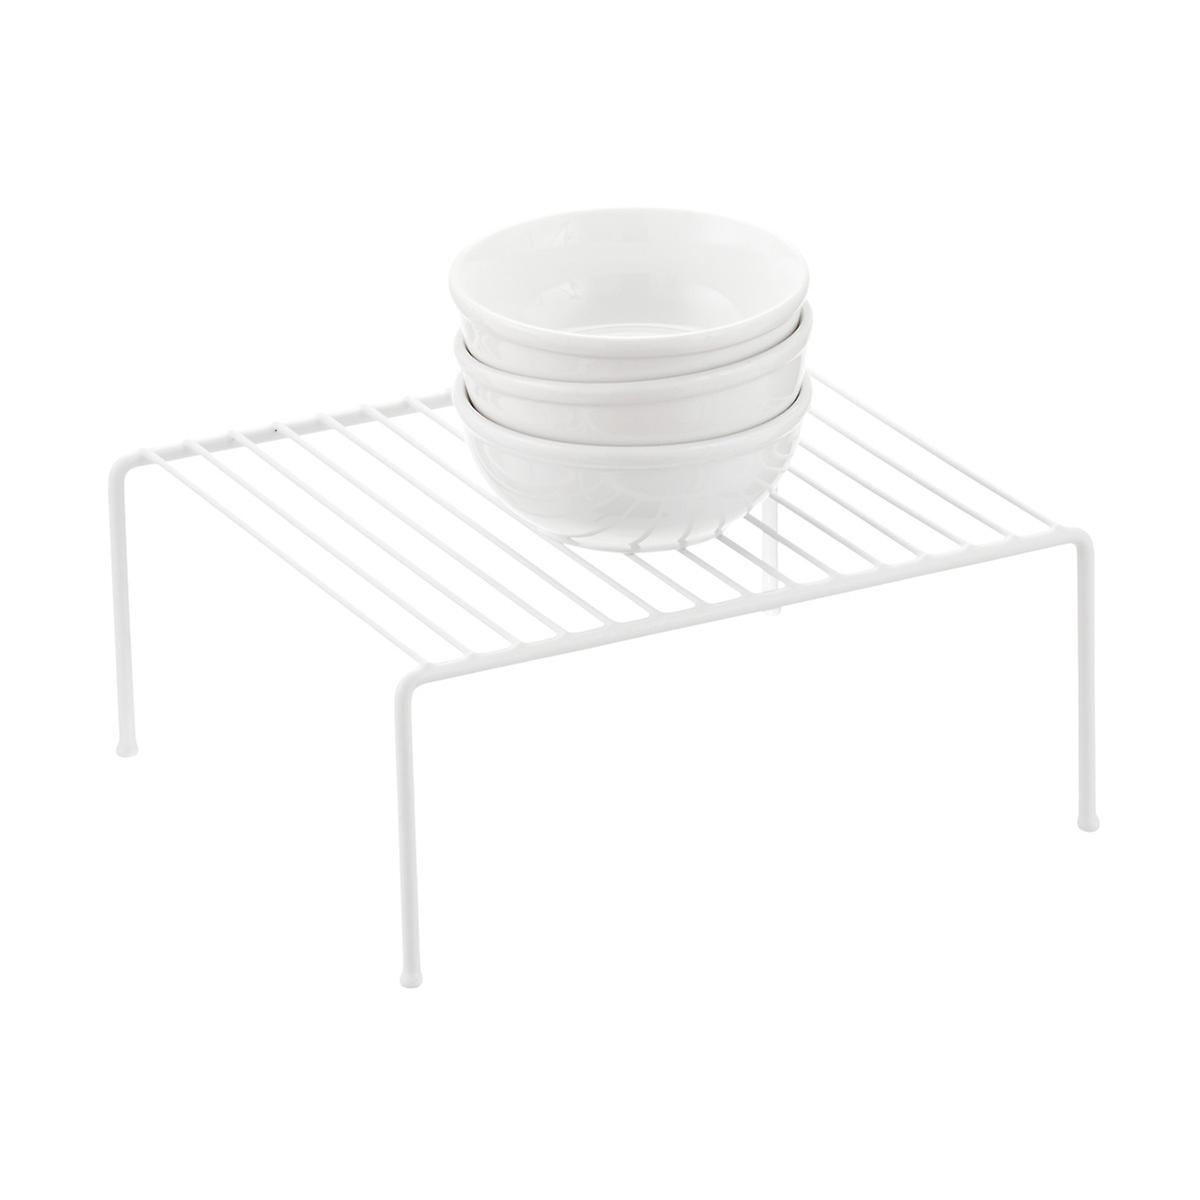 88200-cabinet-shelf-medium-white-v2.jpg